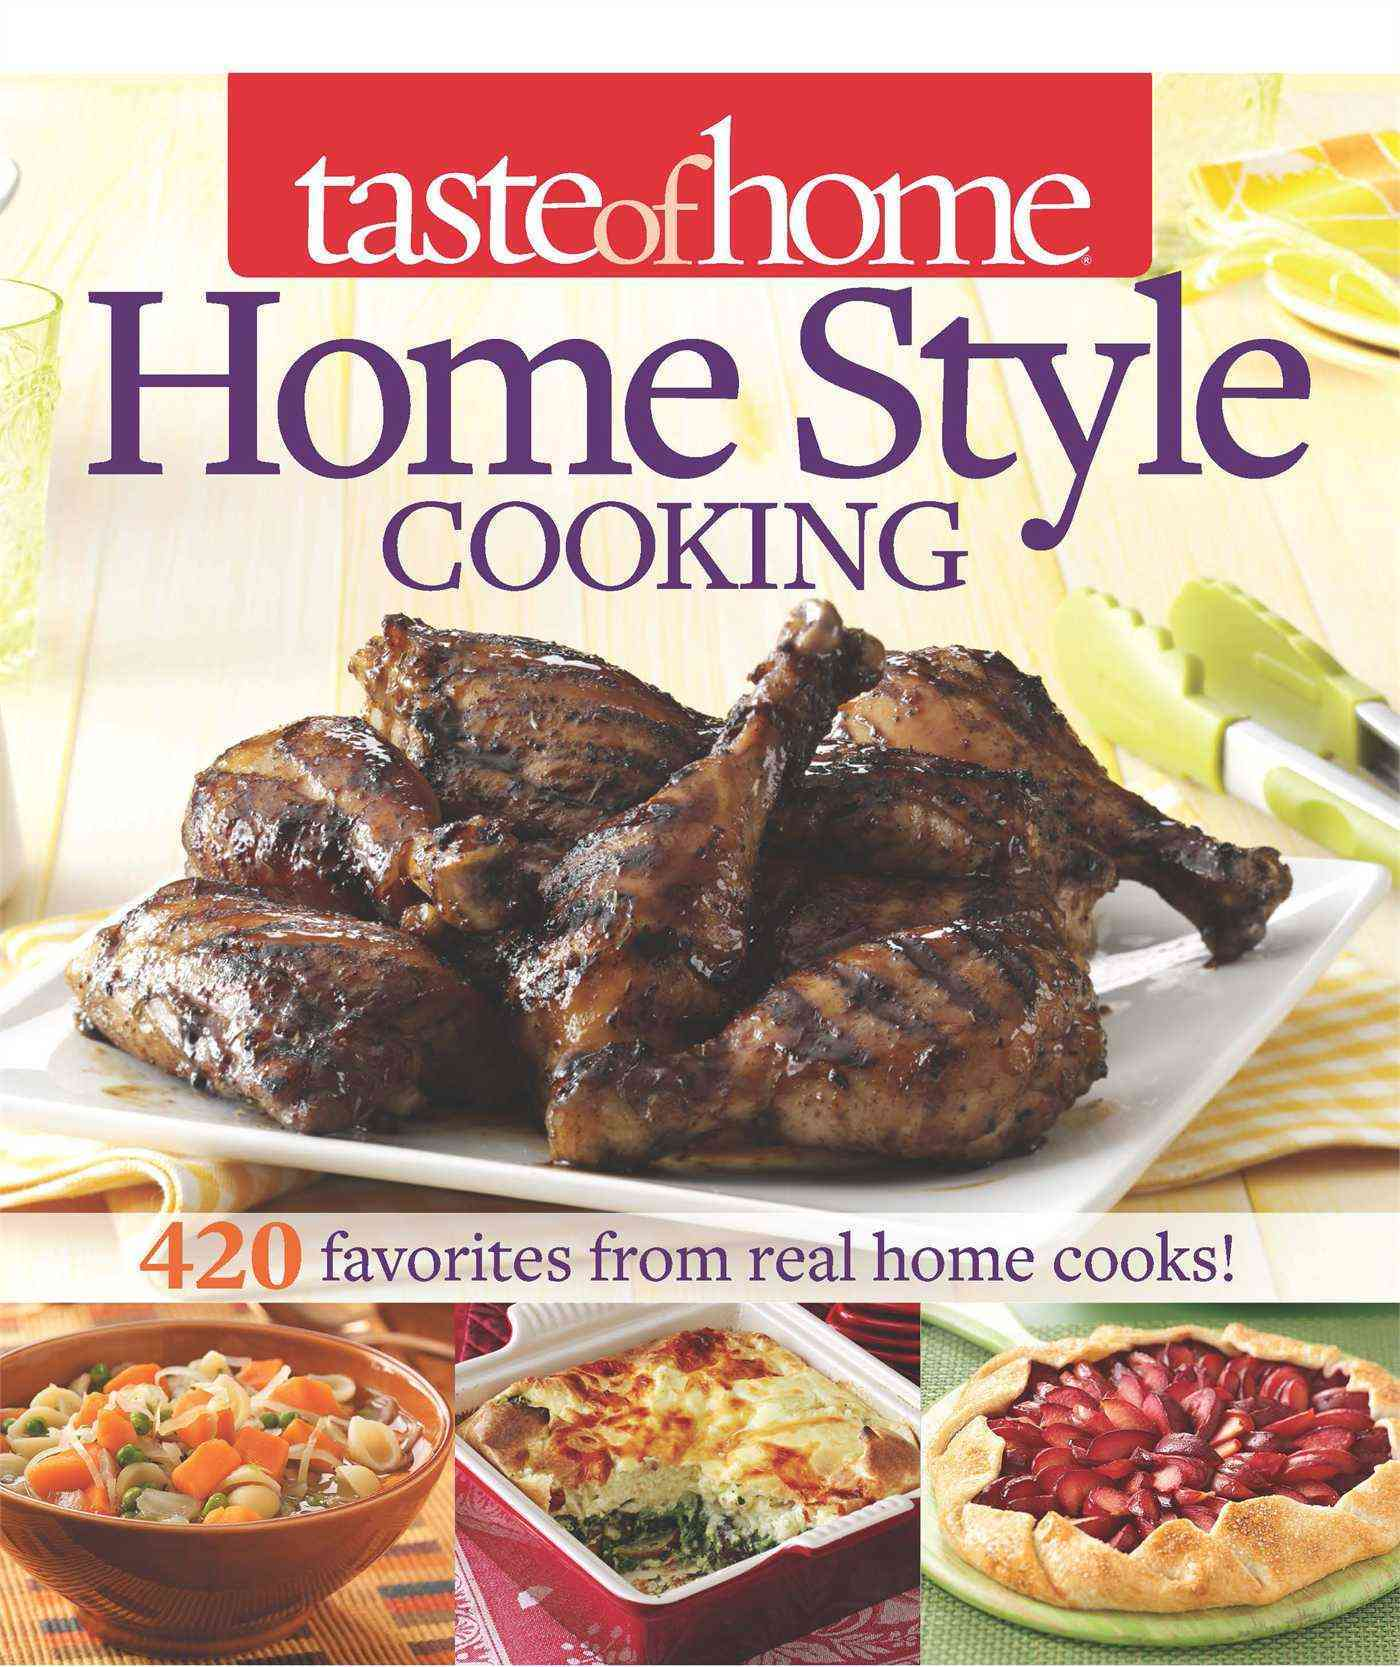 Taste of Home Home Style Cooking (Paperback)